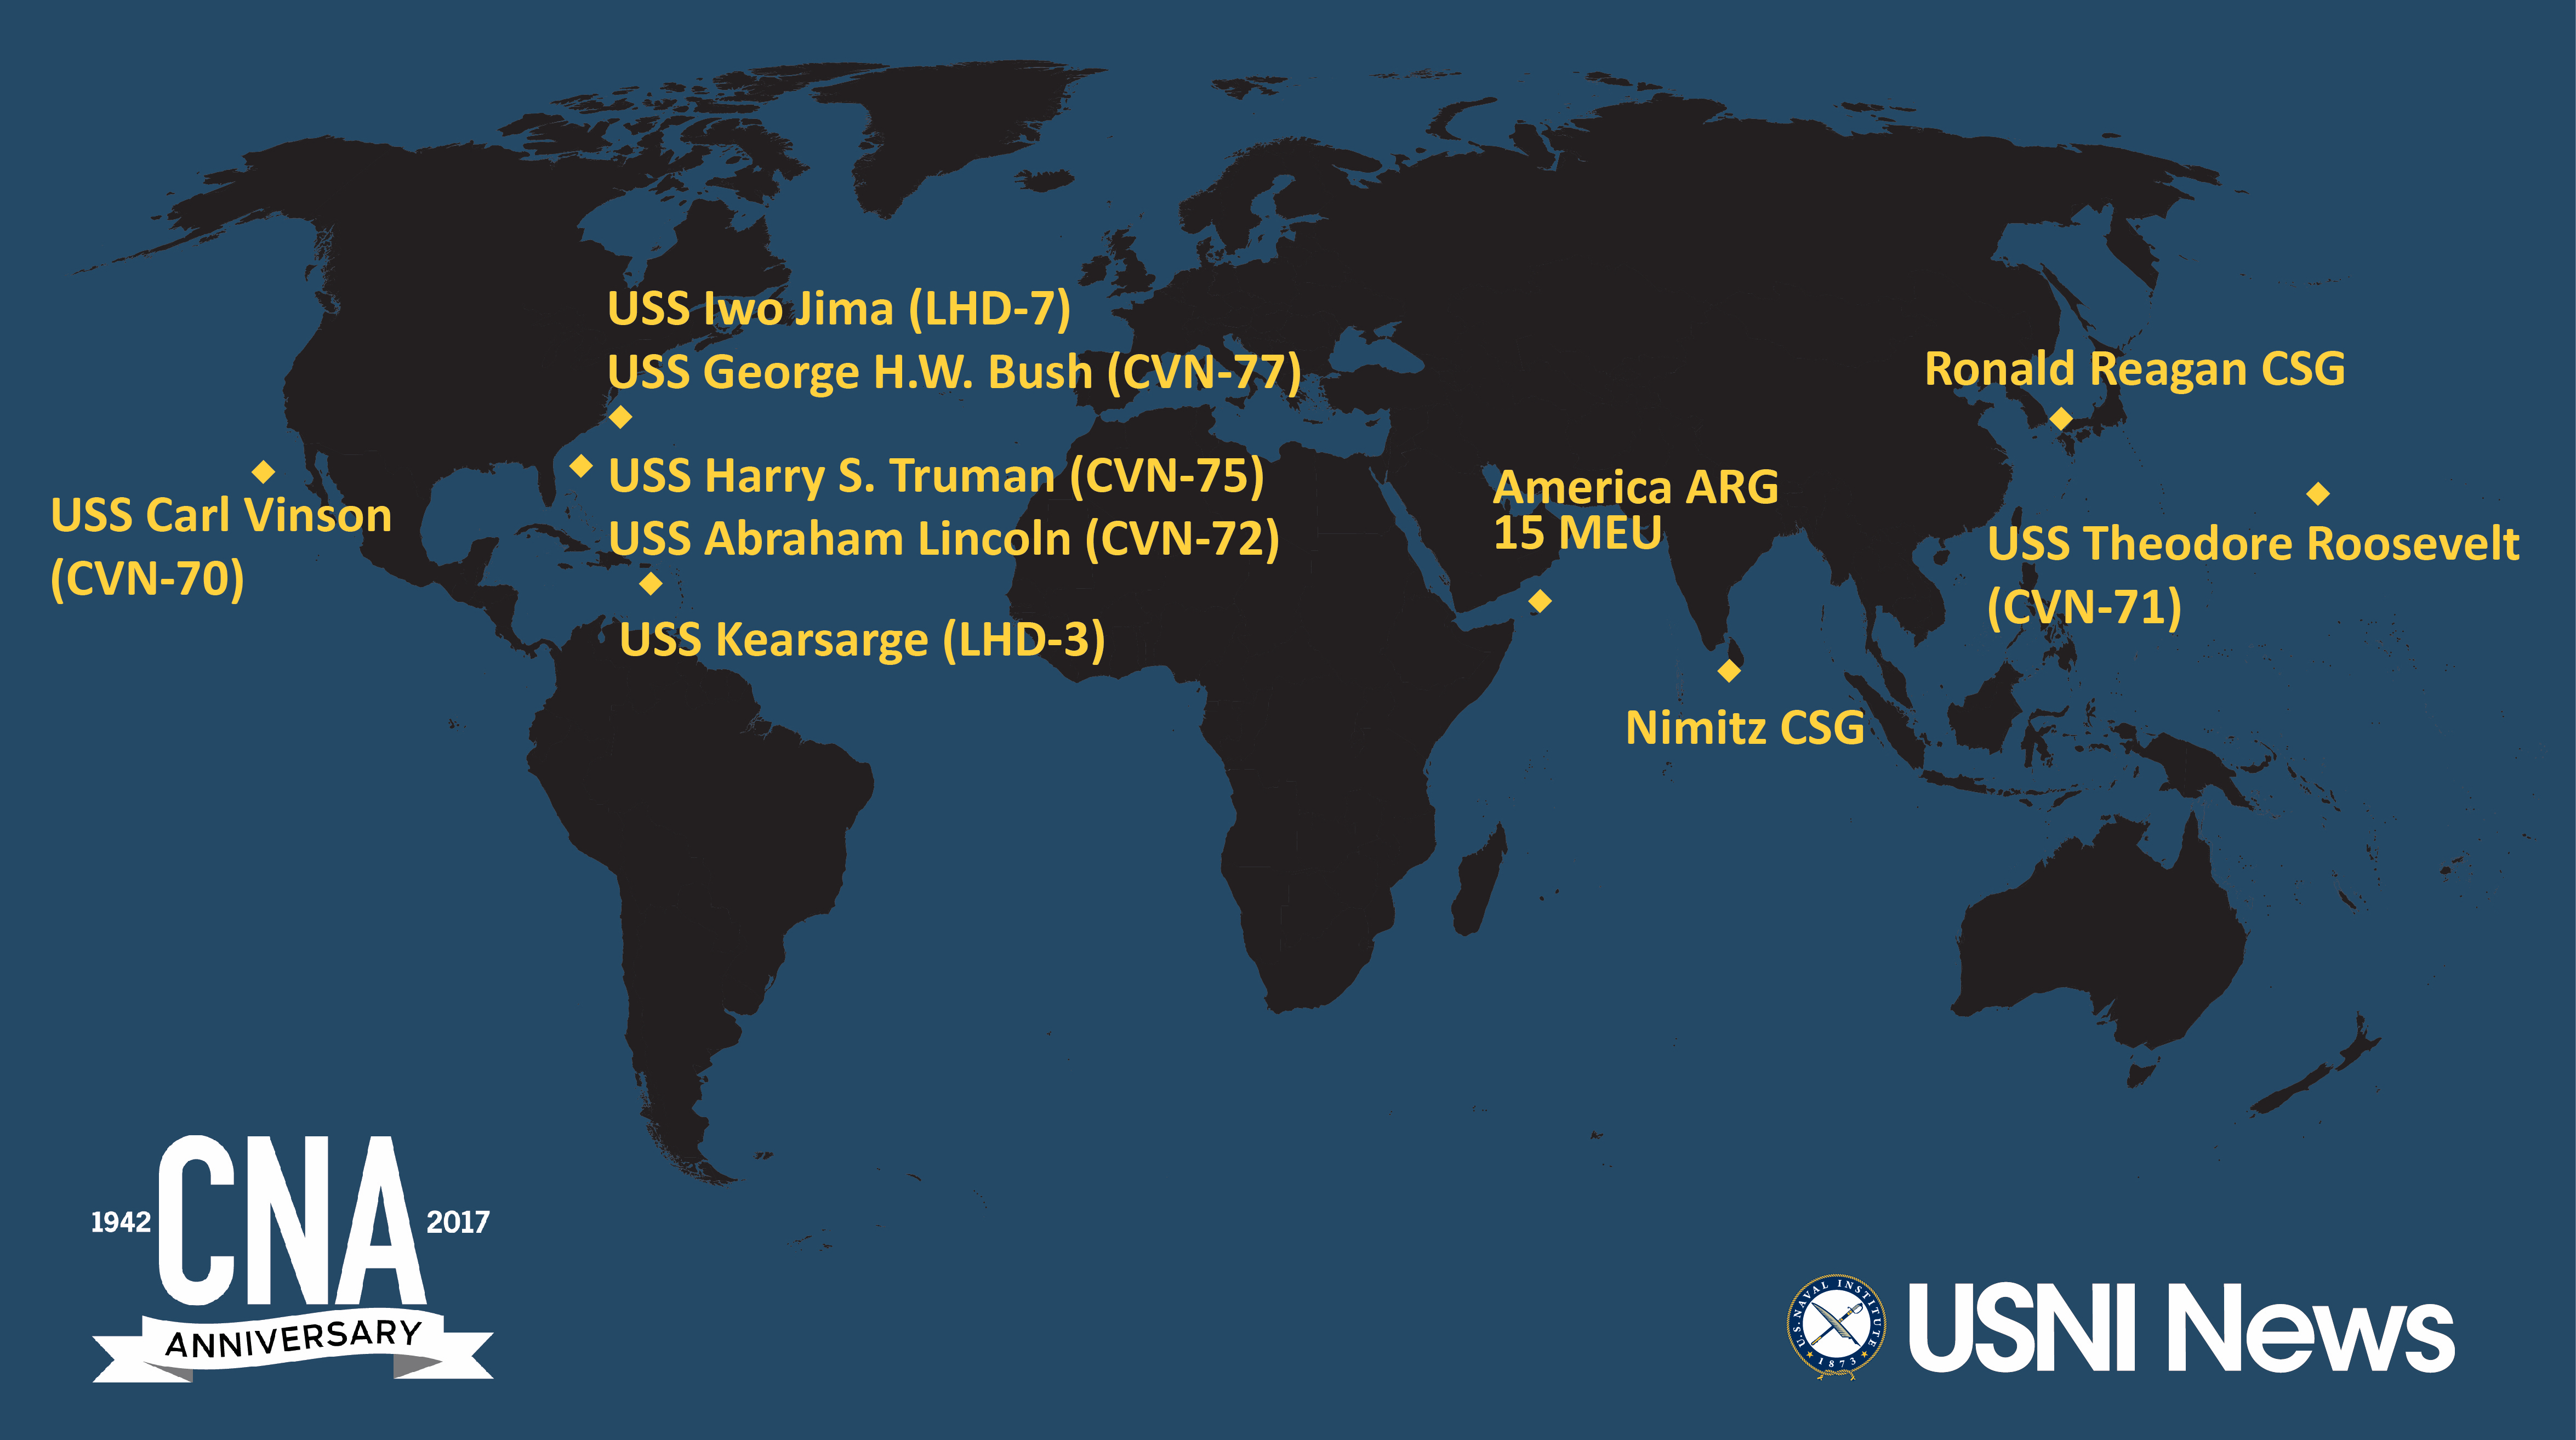 Us carrier strike groups locations map